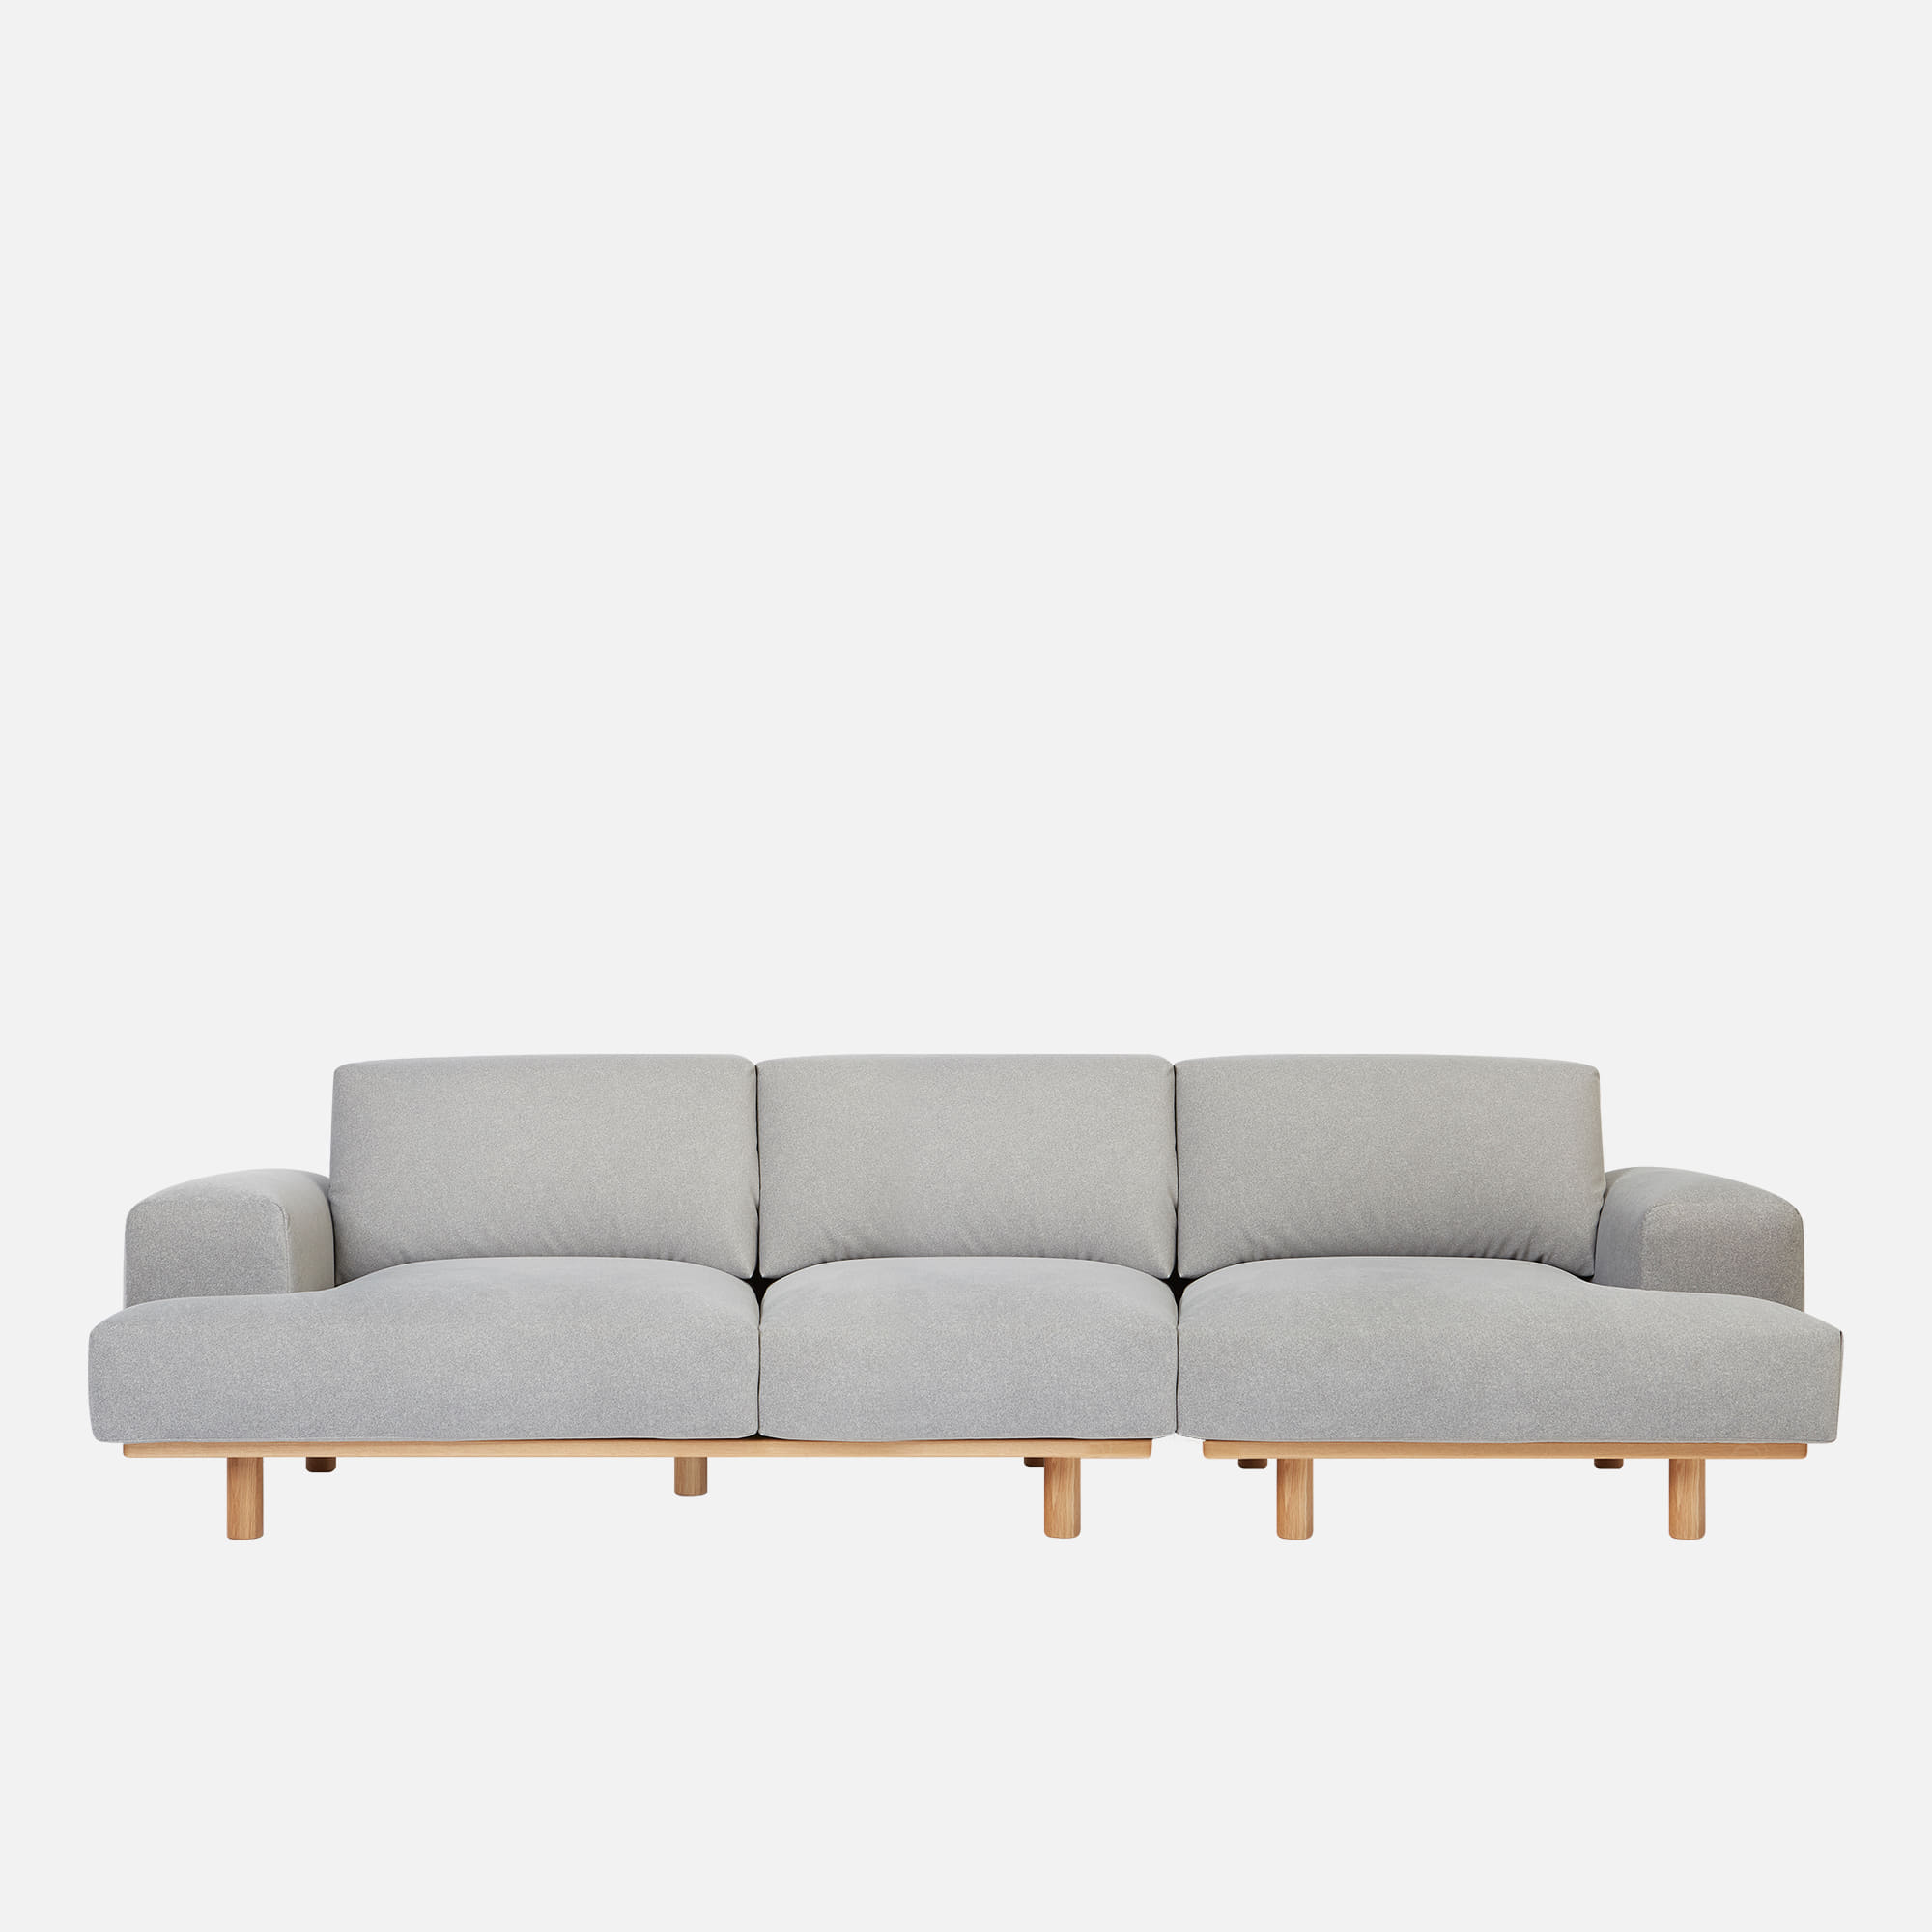 Soft 3 unit Sofa